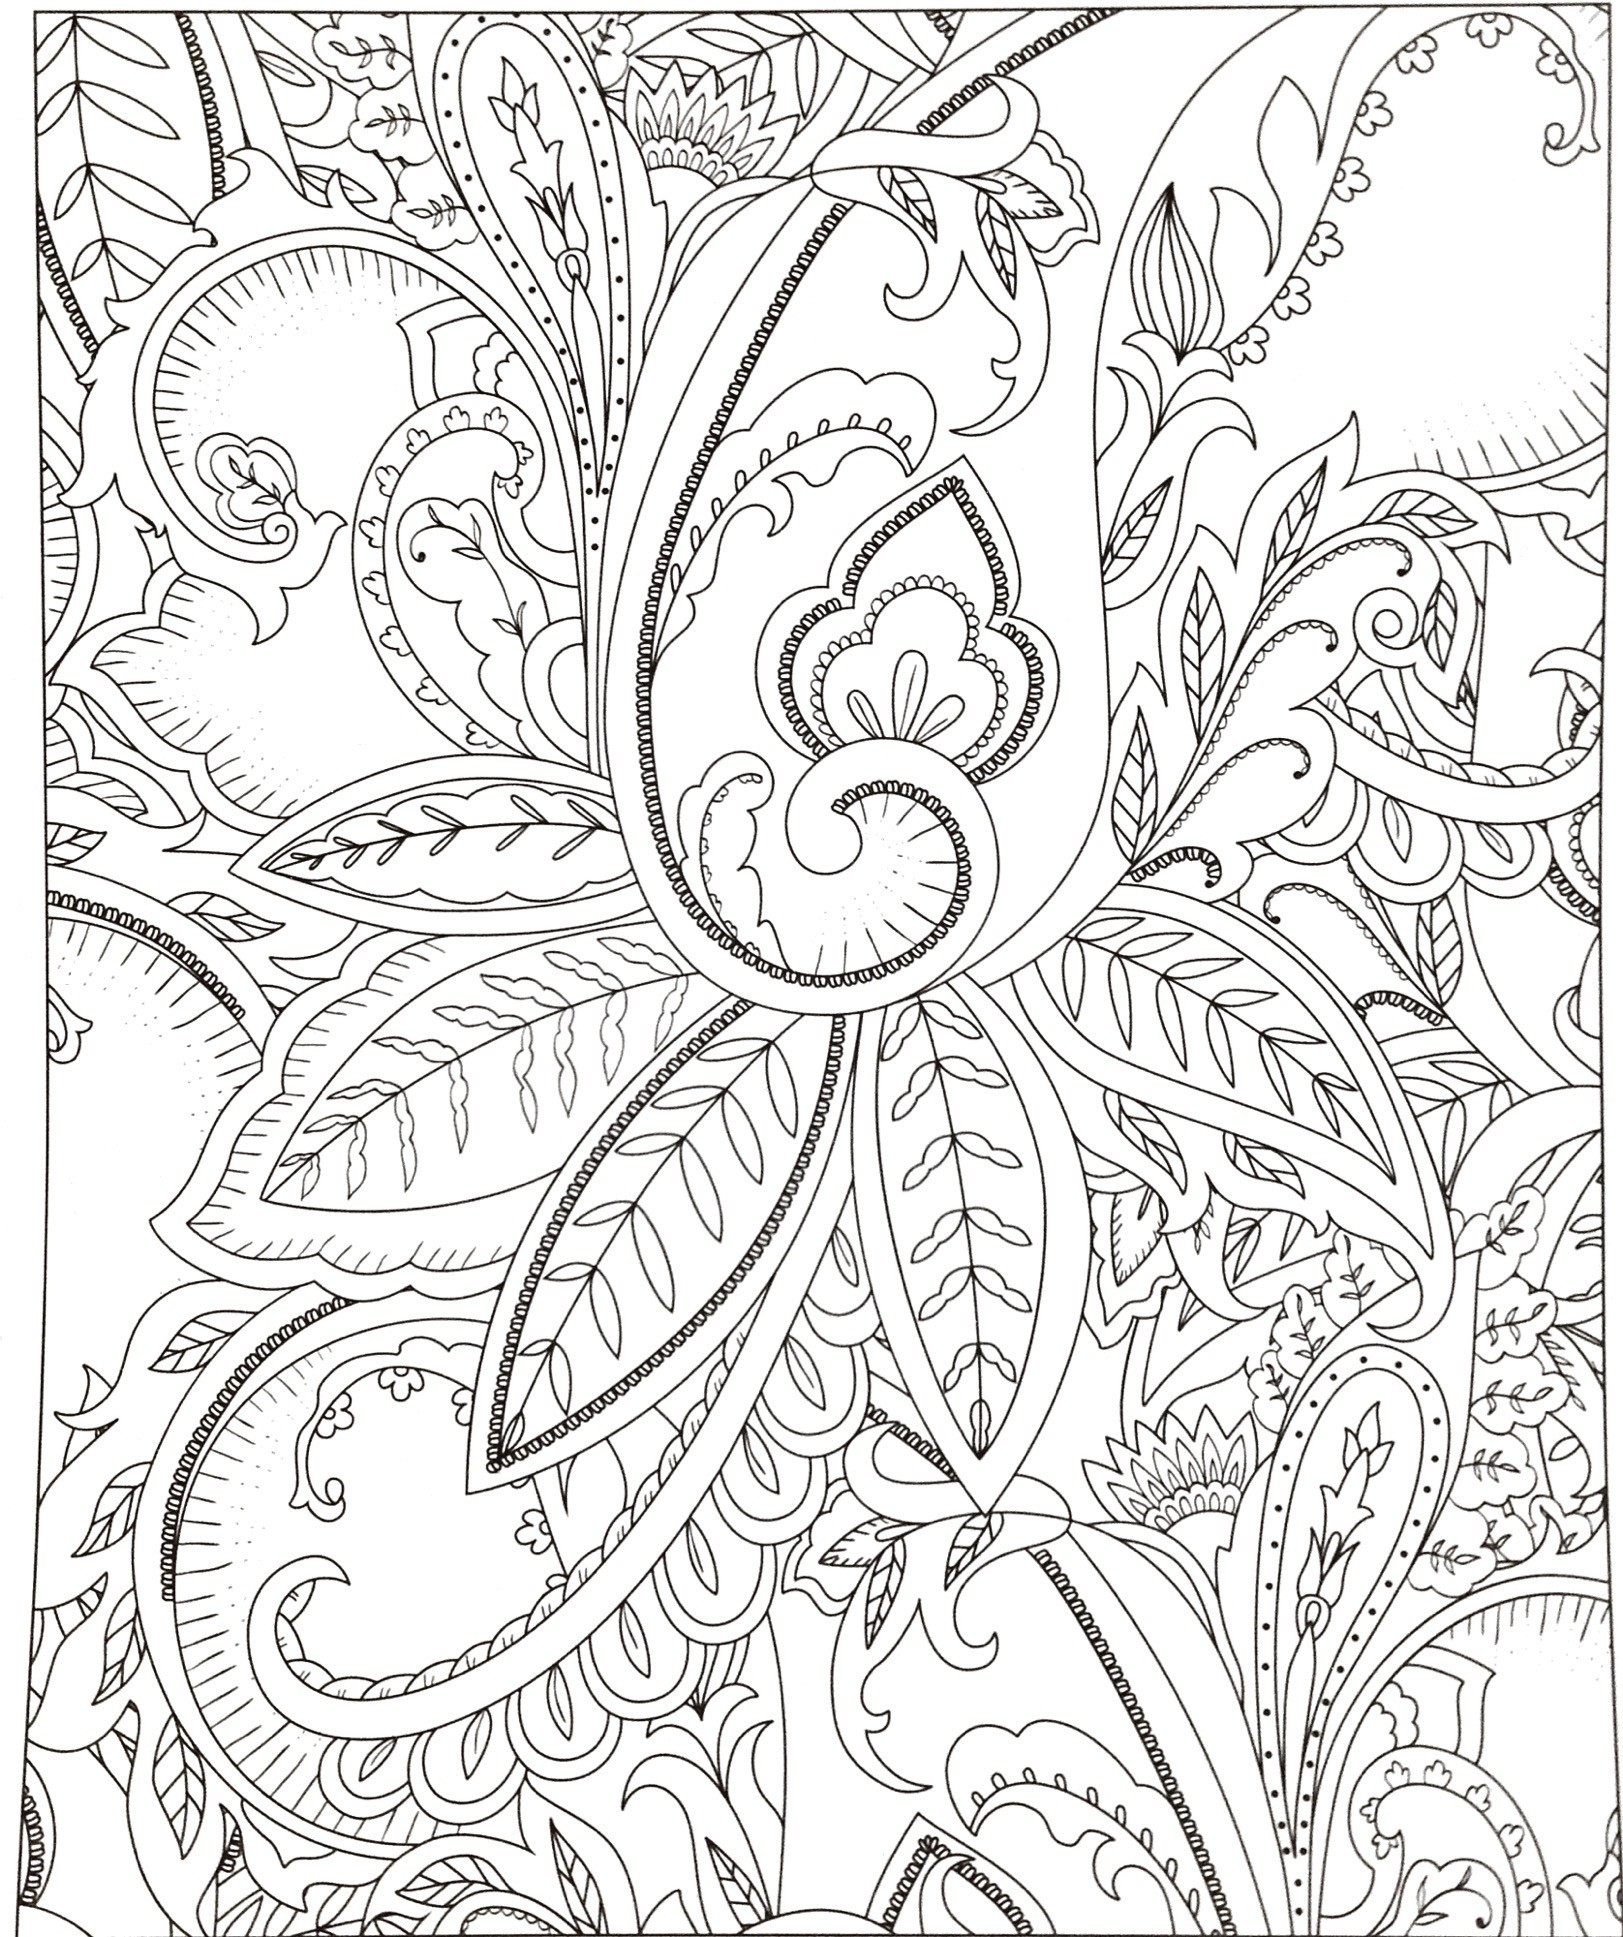 Free Printable Zentangle Coloring Pages  to Print 6g - To print for your project